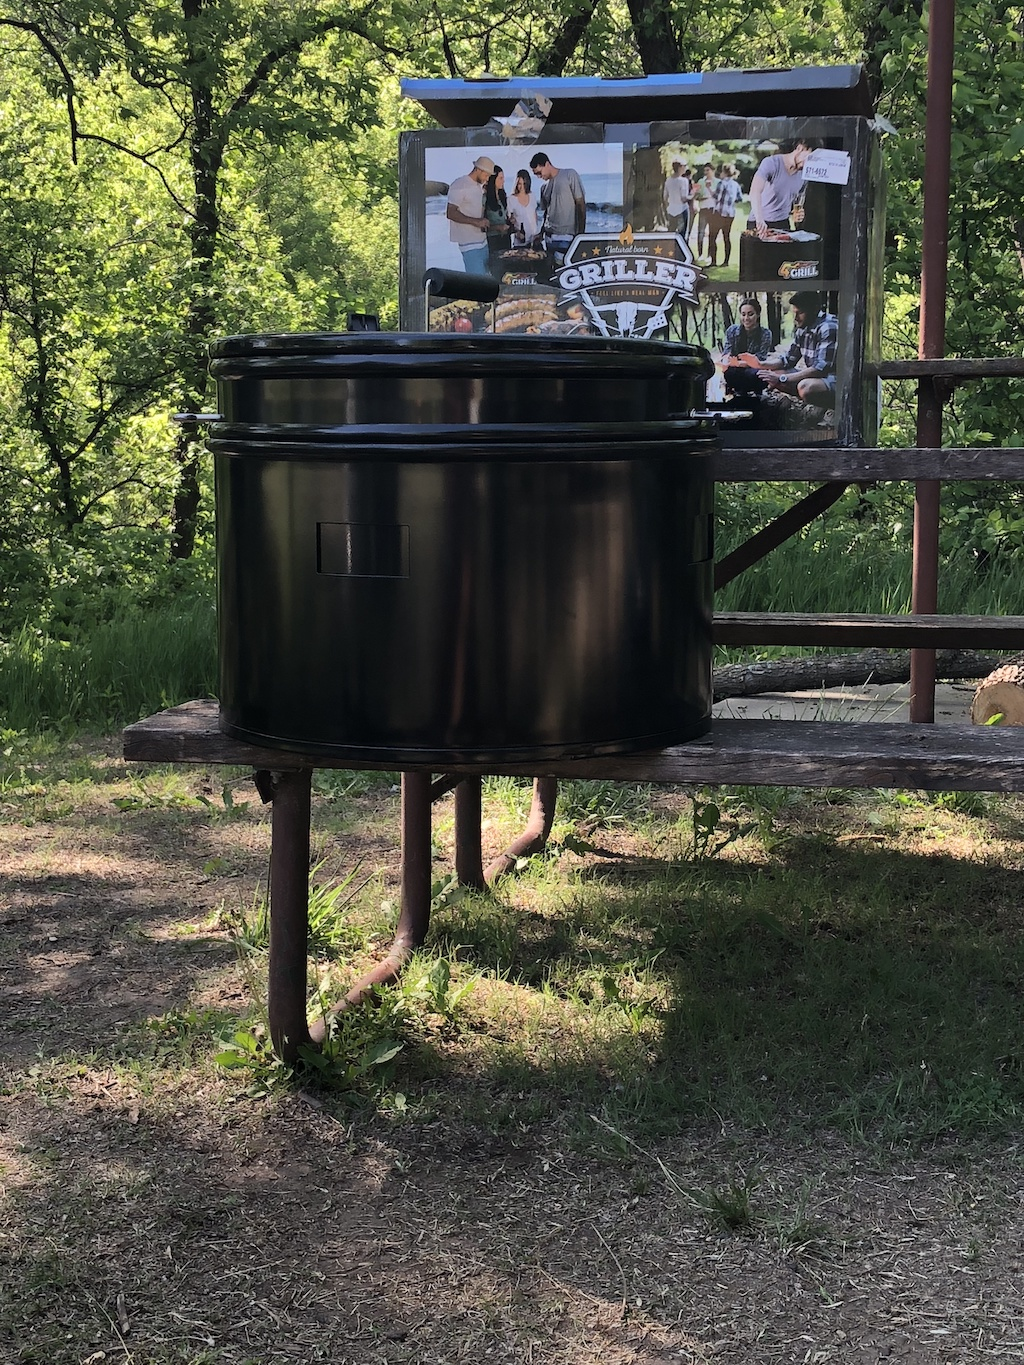 Looking like an old oil drum, the 4Grill Four in one Grill can grill, smoke, slow cook, and be your fire pit and is compact enough to take in your car.